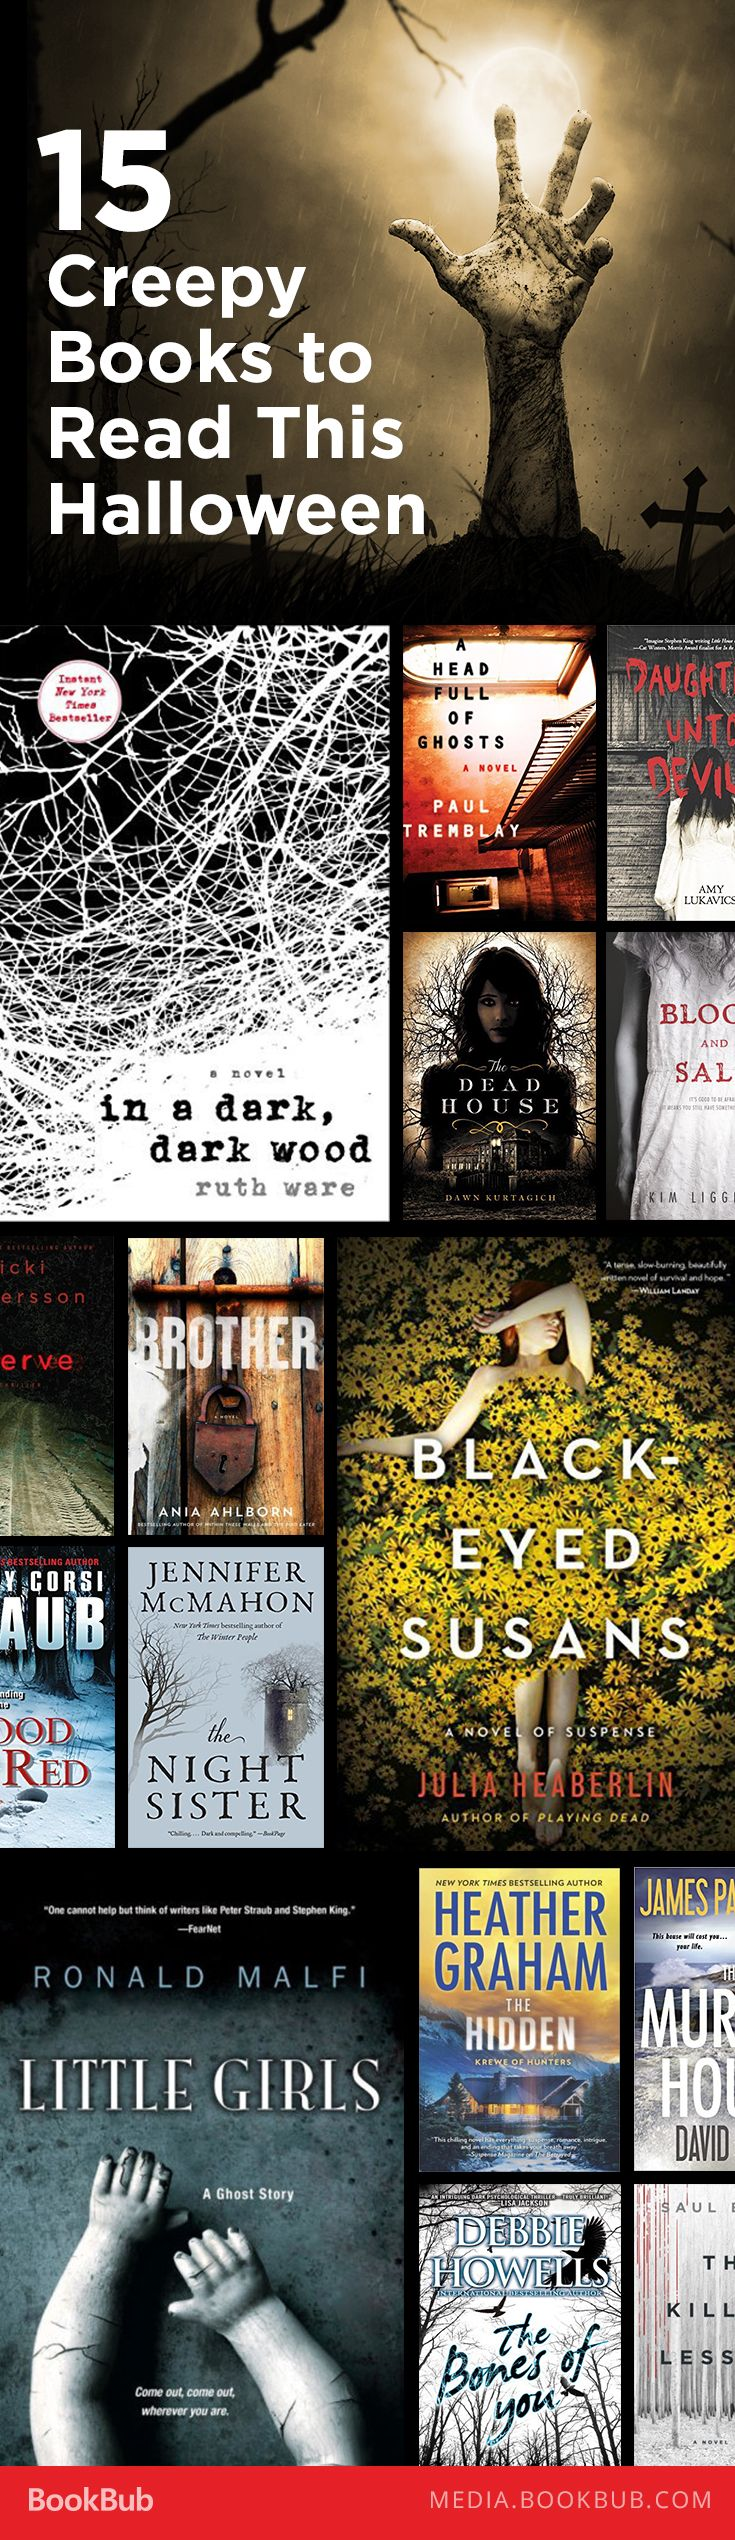 15 creepy books to read for Halloween.